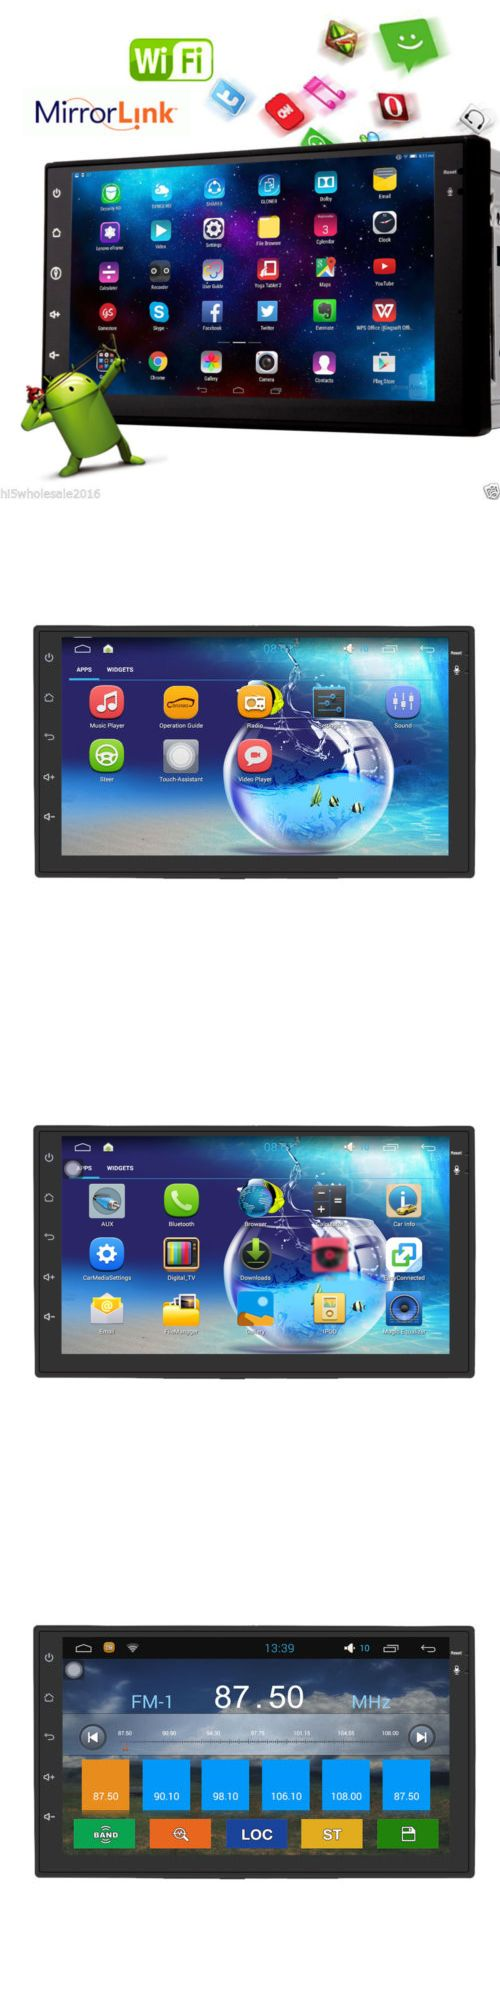 Vehicle Electronics And GPS: Hd 7 Android 4.4 3G-Wifi 2Din Car Stereo Radio In Dash Pc Tablet Gps Nav+Camera BUY IT NOW ONLY: $156.95